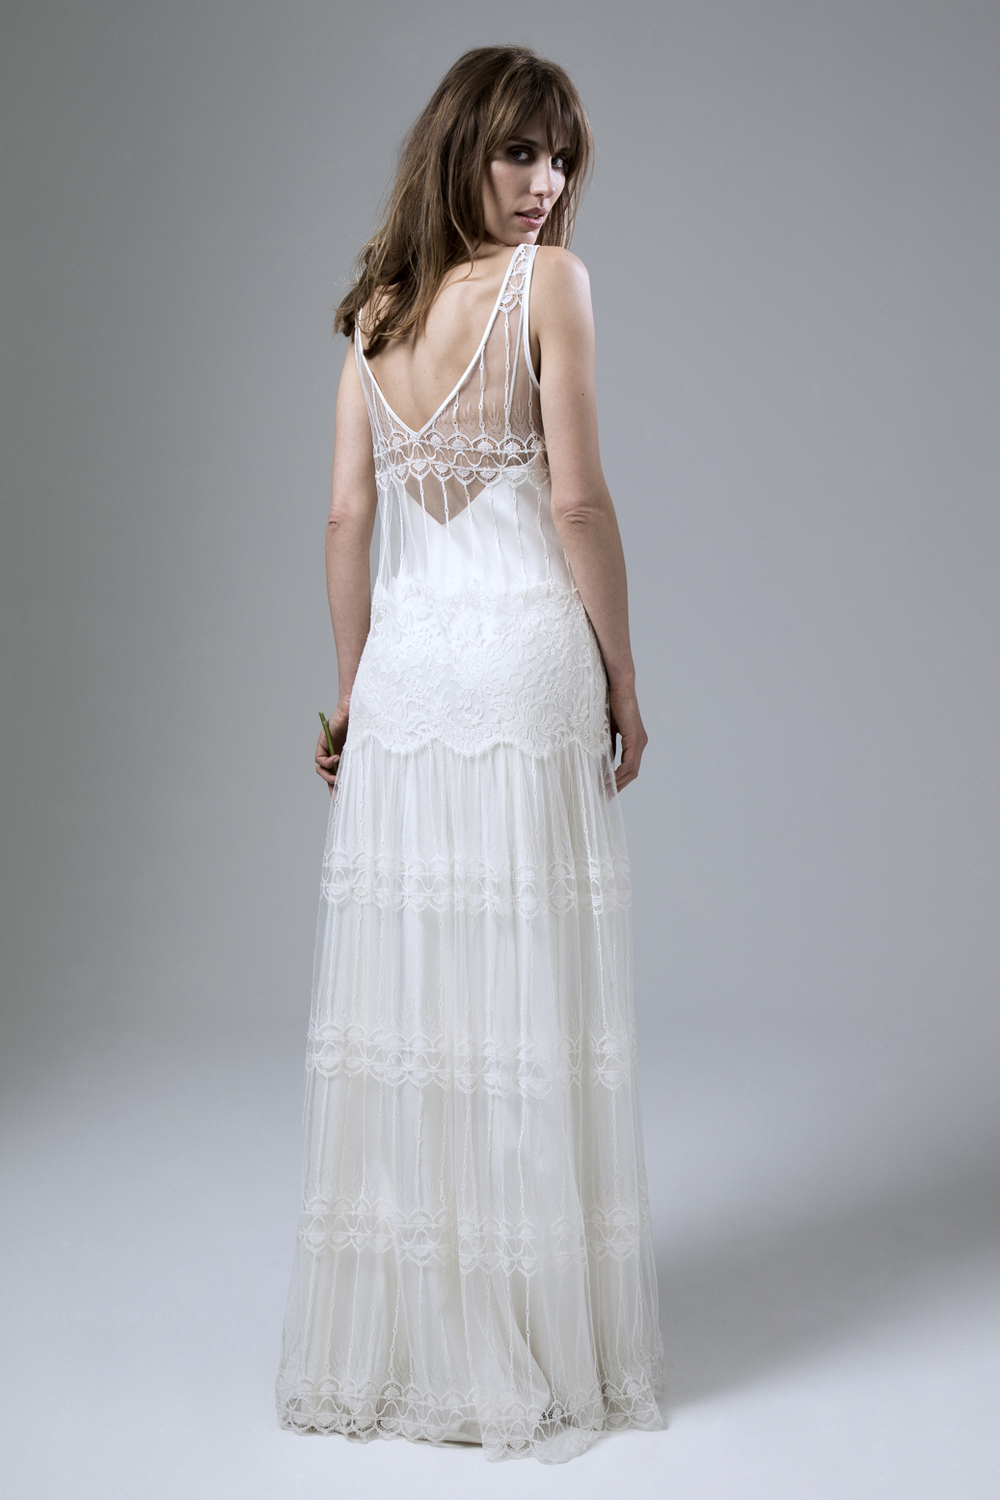 MARILYNE V NECK FRENCH LACE AND CHANTILLY LACE WEDDING DRESS BY HALFPENNY LONDON